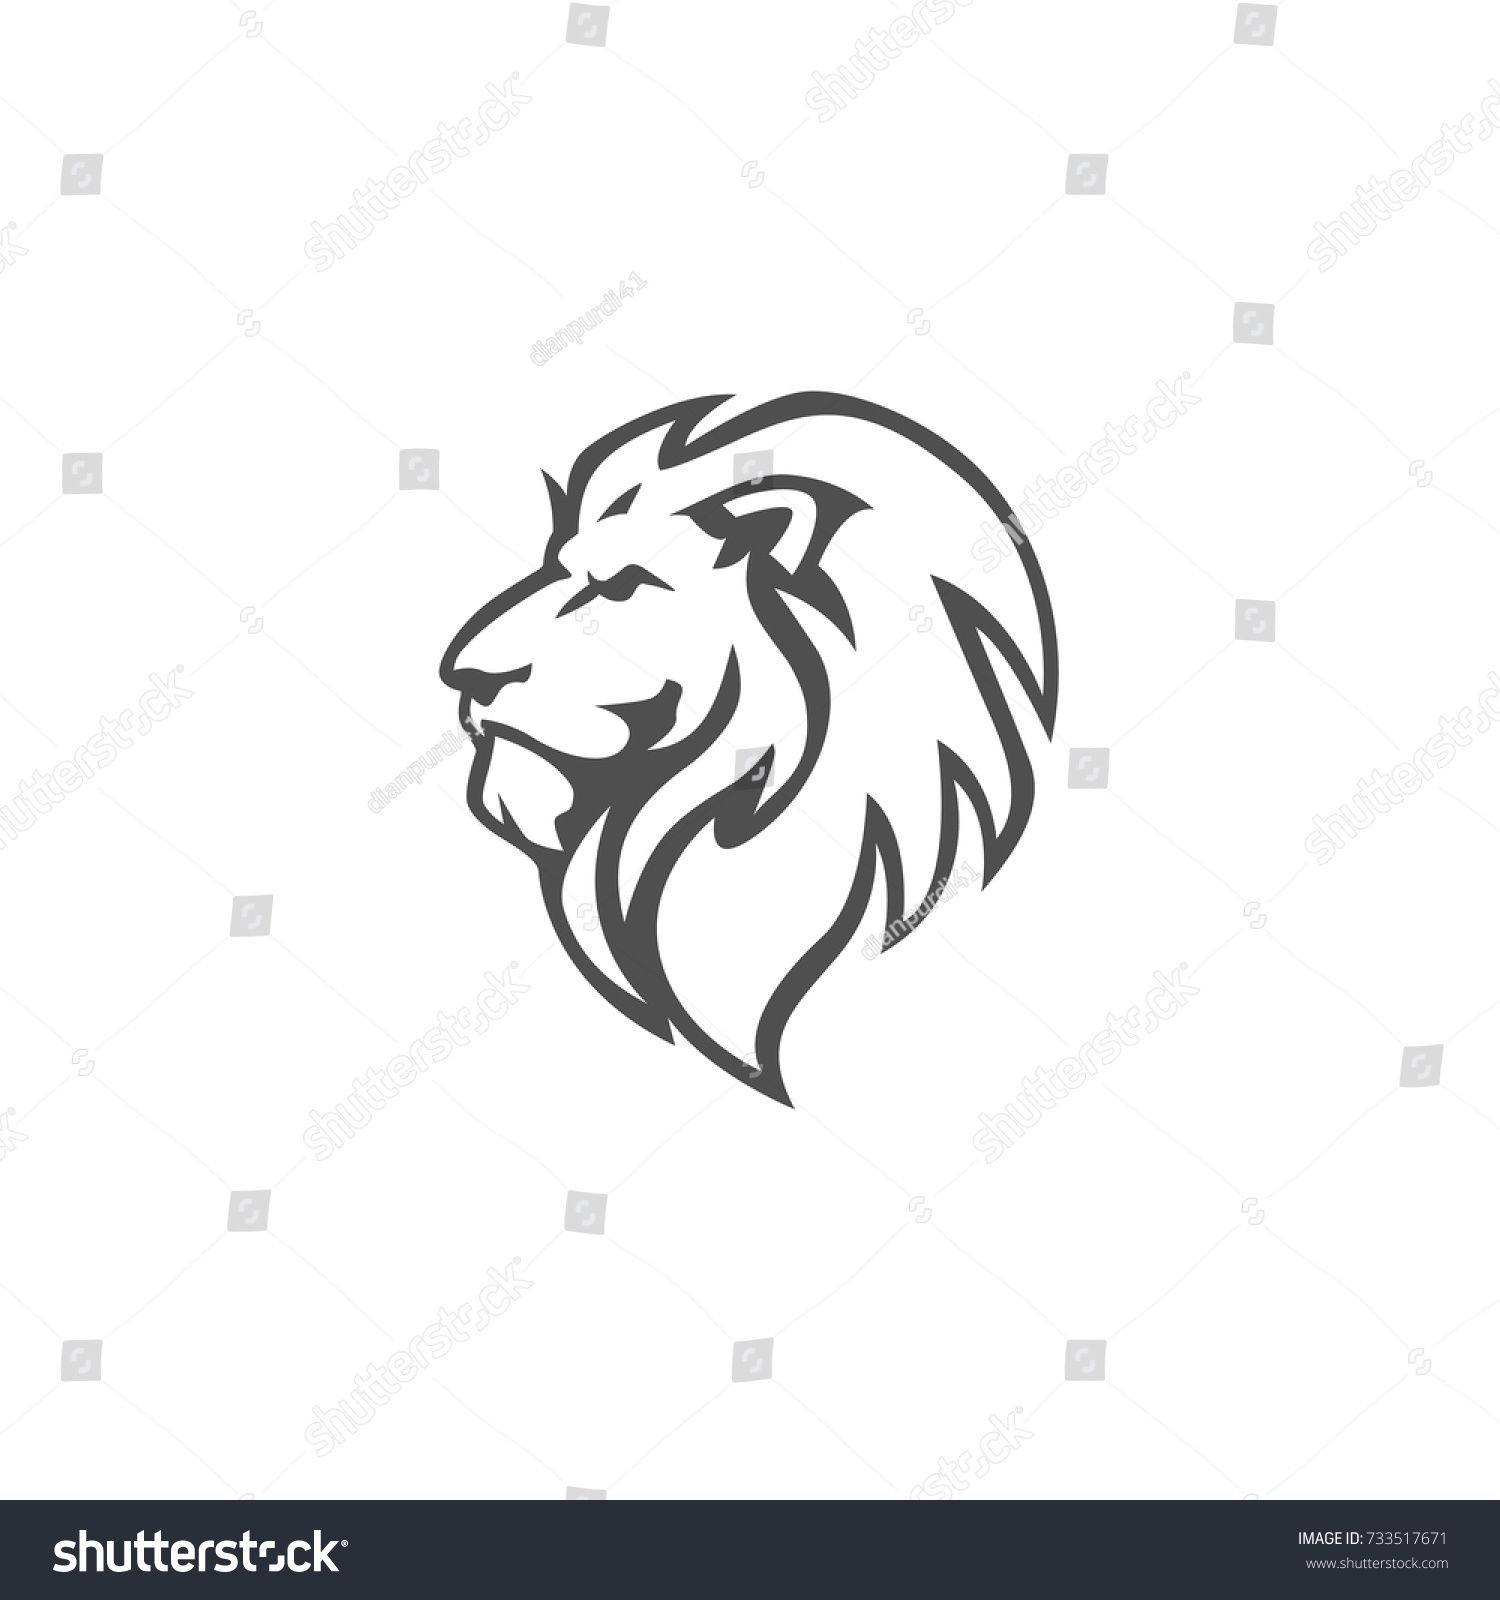 Angry, Roar Lion Head, Black And White, Vector Logo Design